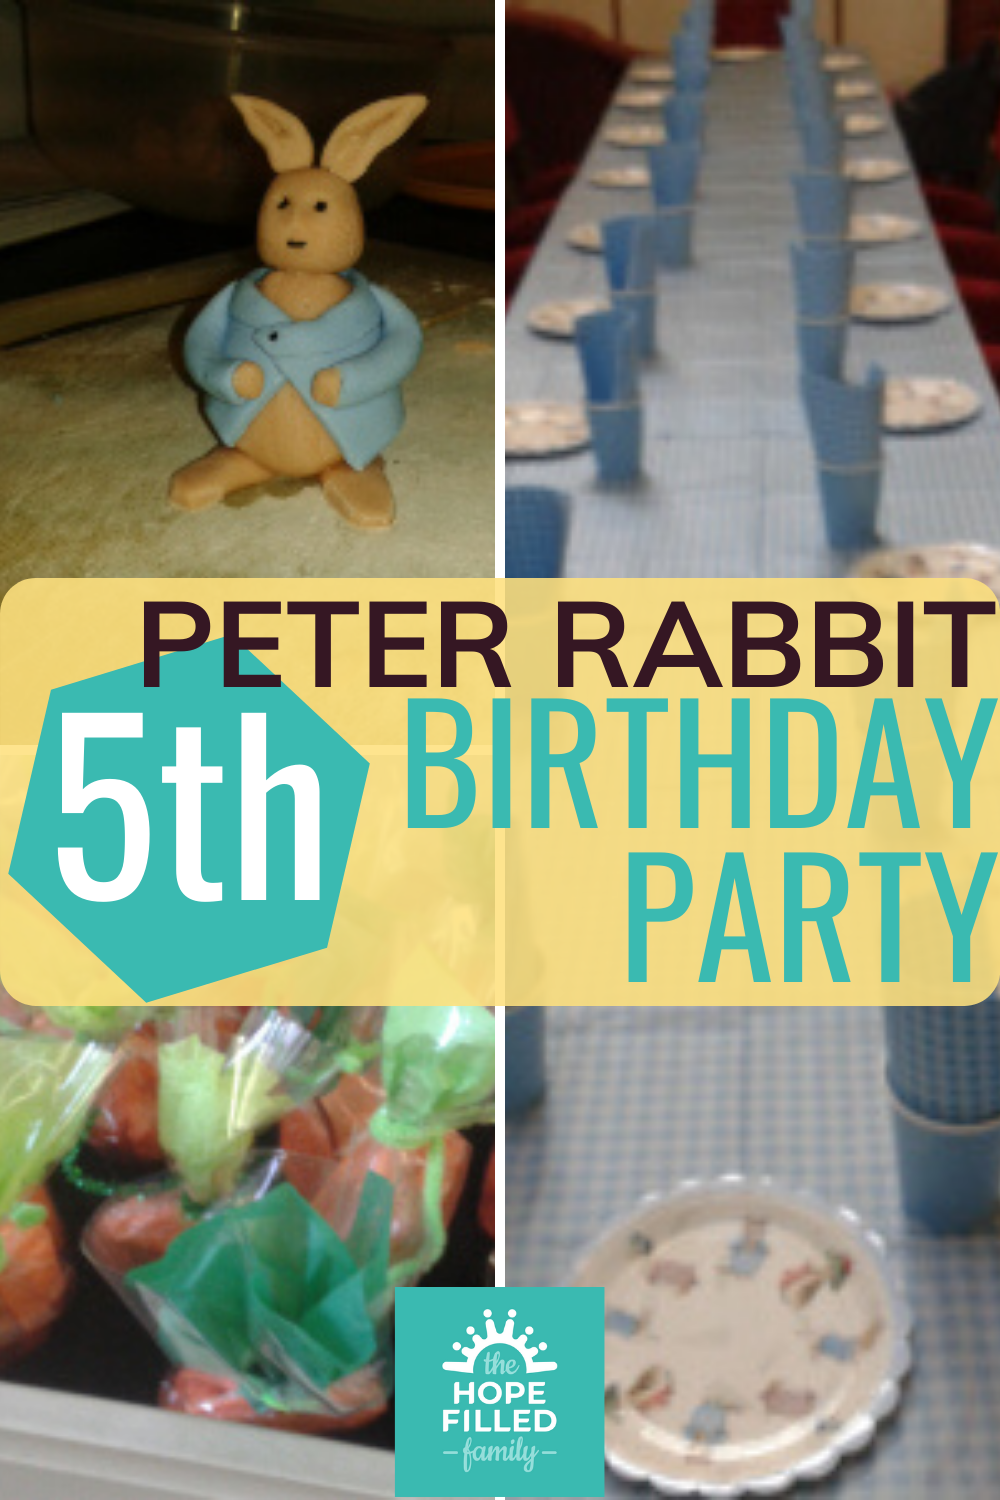 Peter Rabbit themed 5th birthday party for a 5 year old boy. Crafts, games, activities, food and decorations.